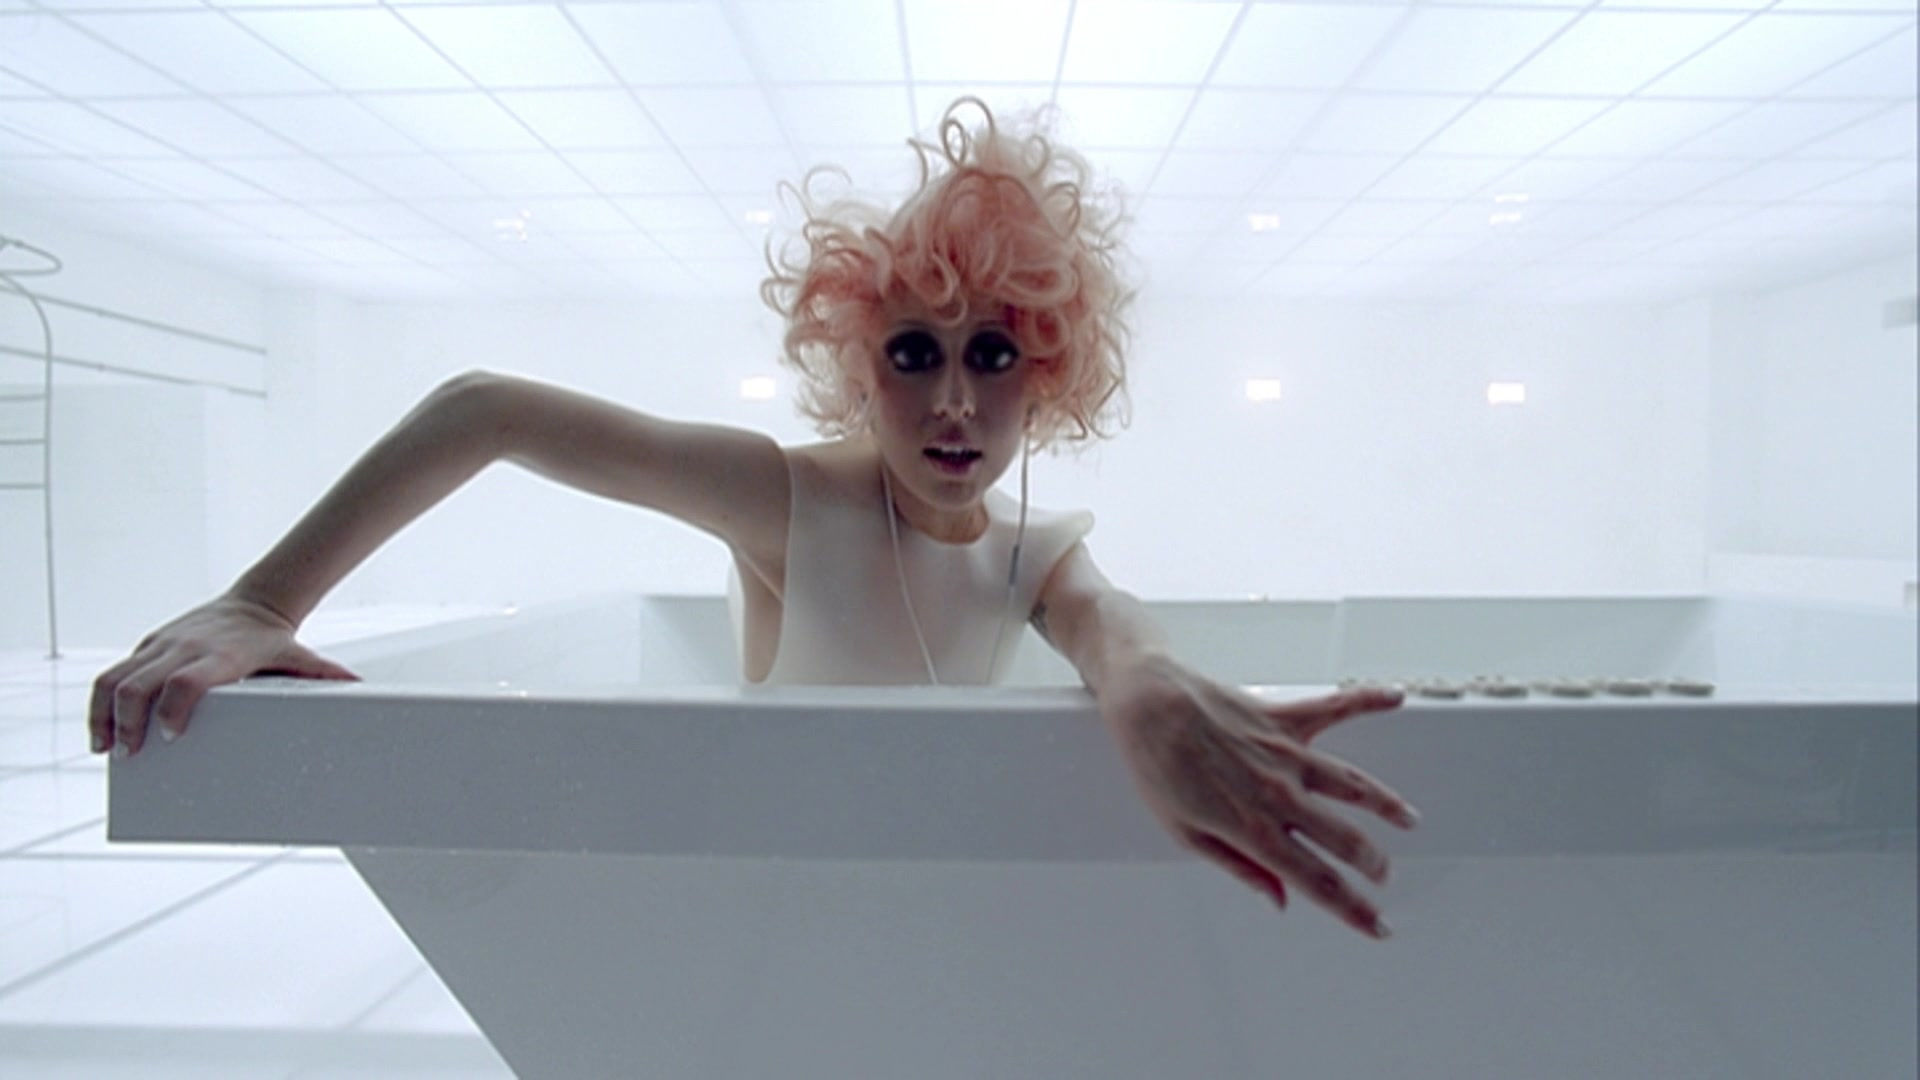 File:Lady Gaga - Bad Romance 012.jpg